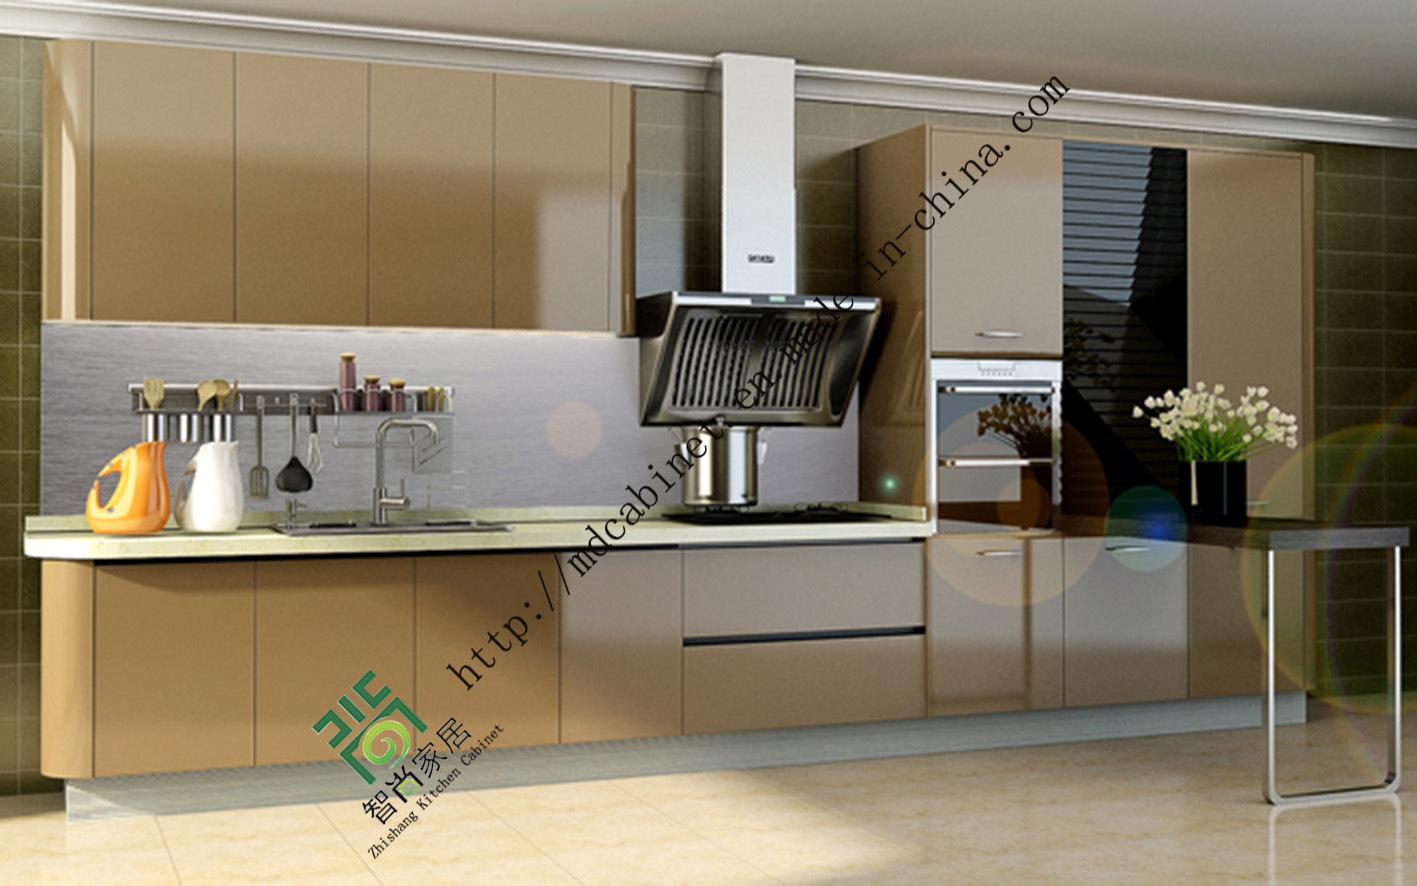 China Acrylic Kitchen Cabinet Door Photos & Pictures